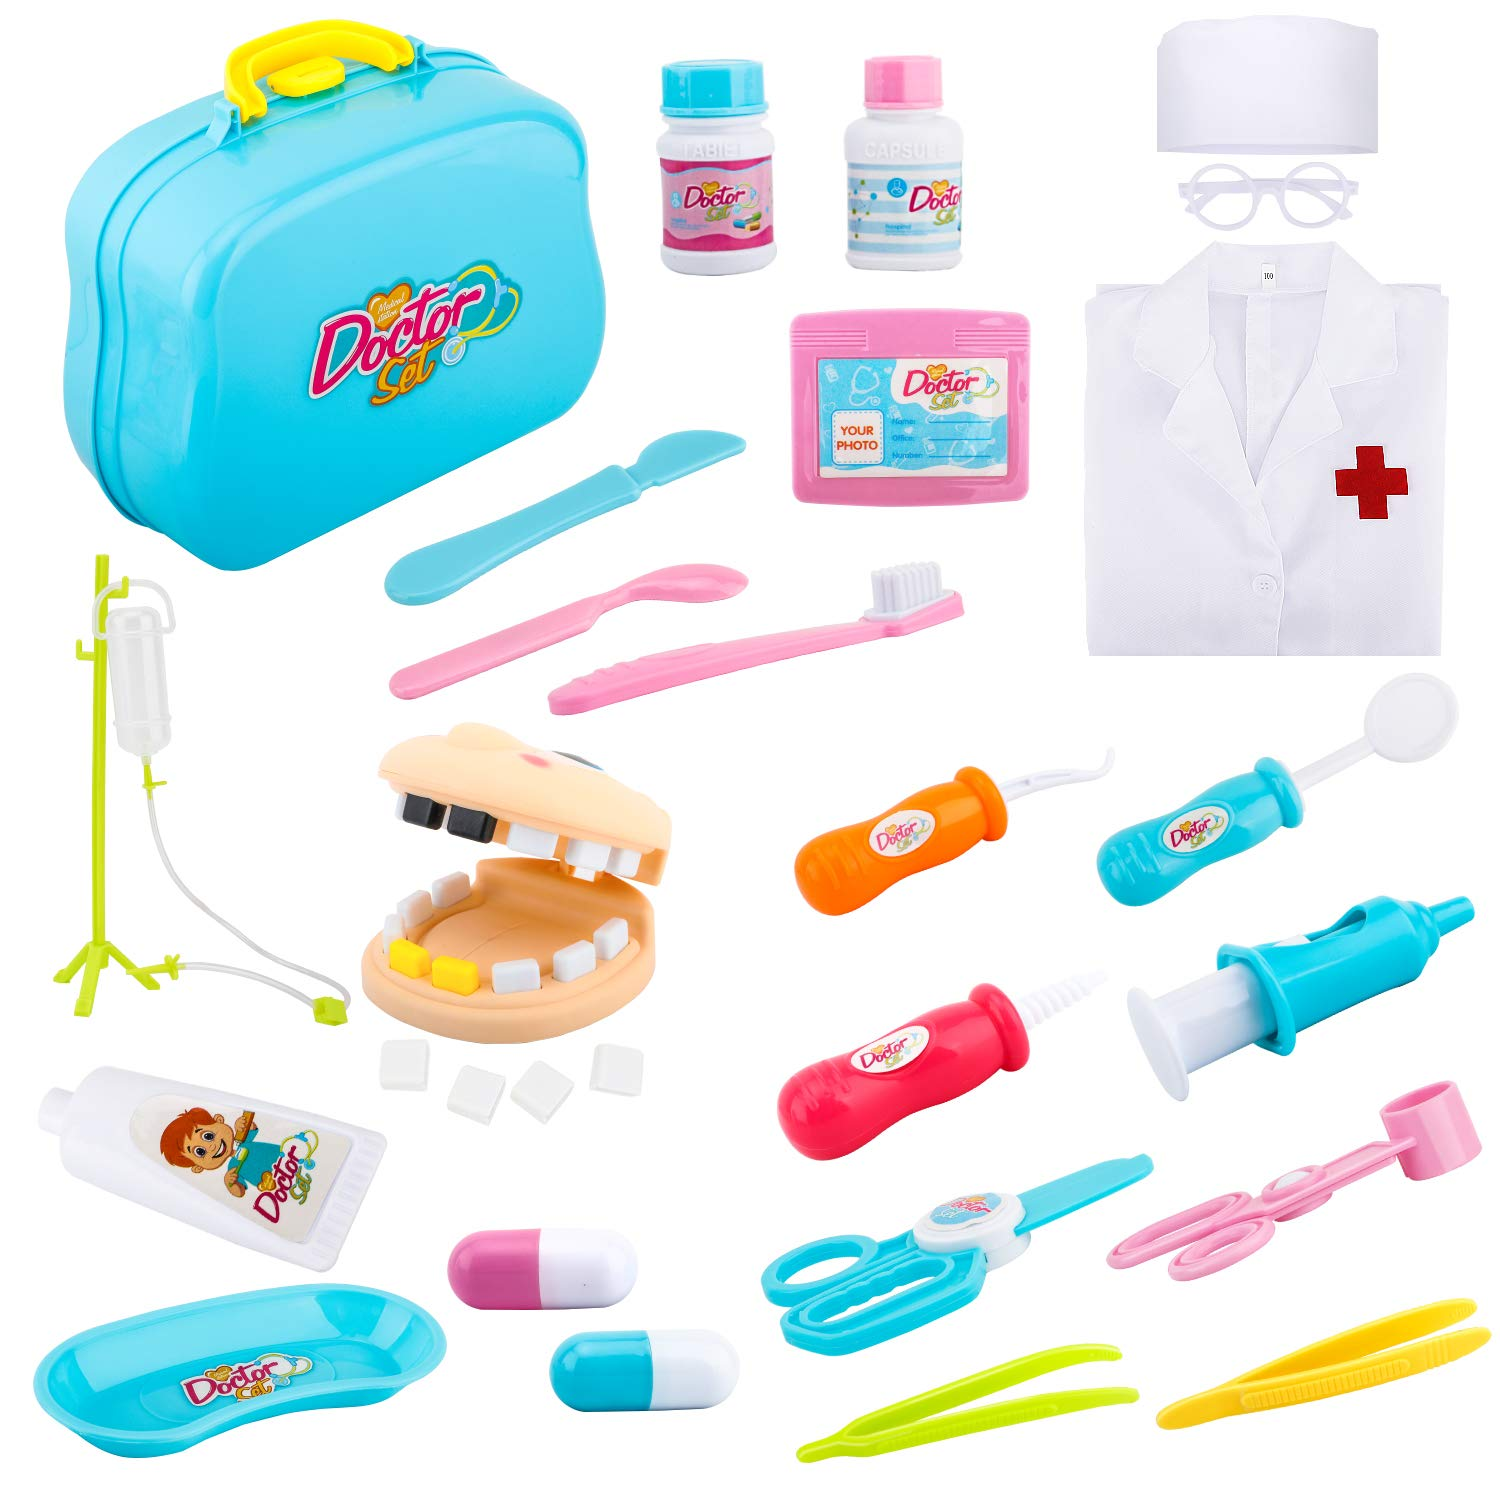 Zooawa Medical Dentist Pretend Play Set, [26PCS] Doctor and Nurse Role Play Kits Dress-Up and Educational Toys with Handy Carrying Case for Kids and Toddlers Over 3 Years Old - Colorful by Zooawa